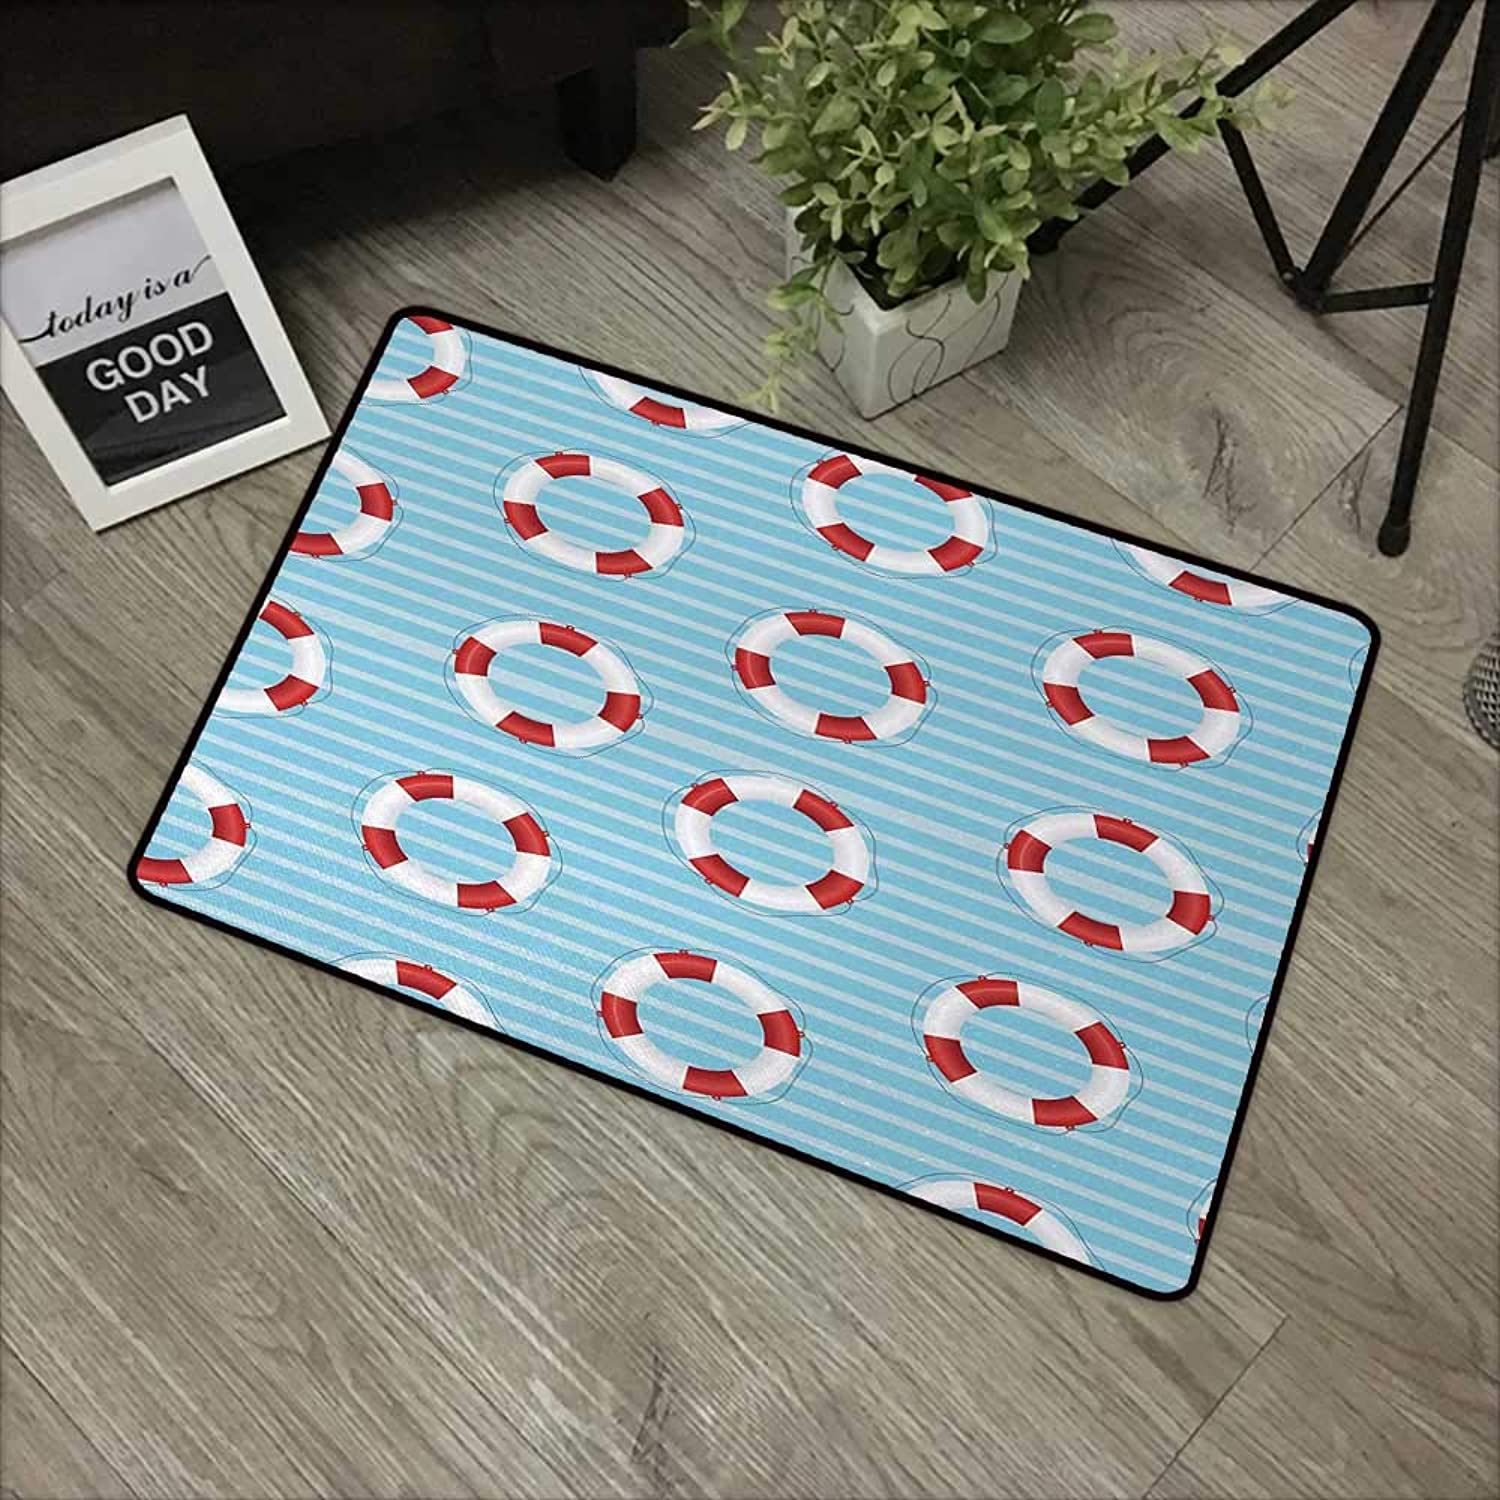 Learning pad W35 x L59 INCH Buoy,Life Preserver Crisis Security Lifejacket Lifeguard Danger Predection Symbols,Baby bluee Red White Easy to Clean, no Deformation, no Fading Non-Slip Door Mat Carpet